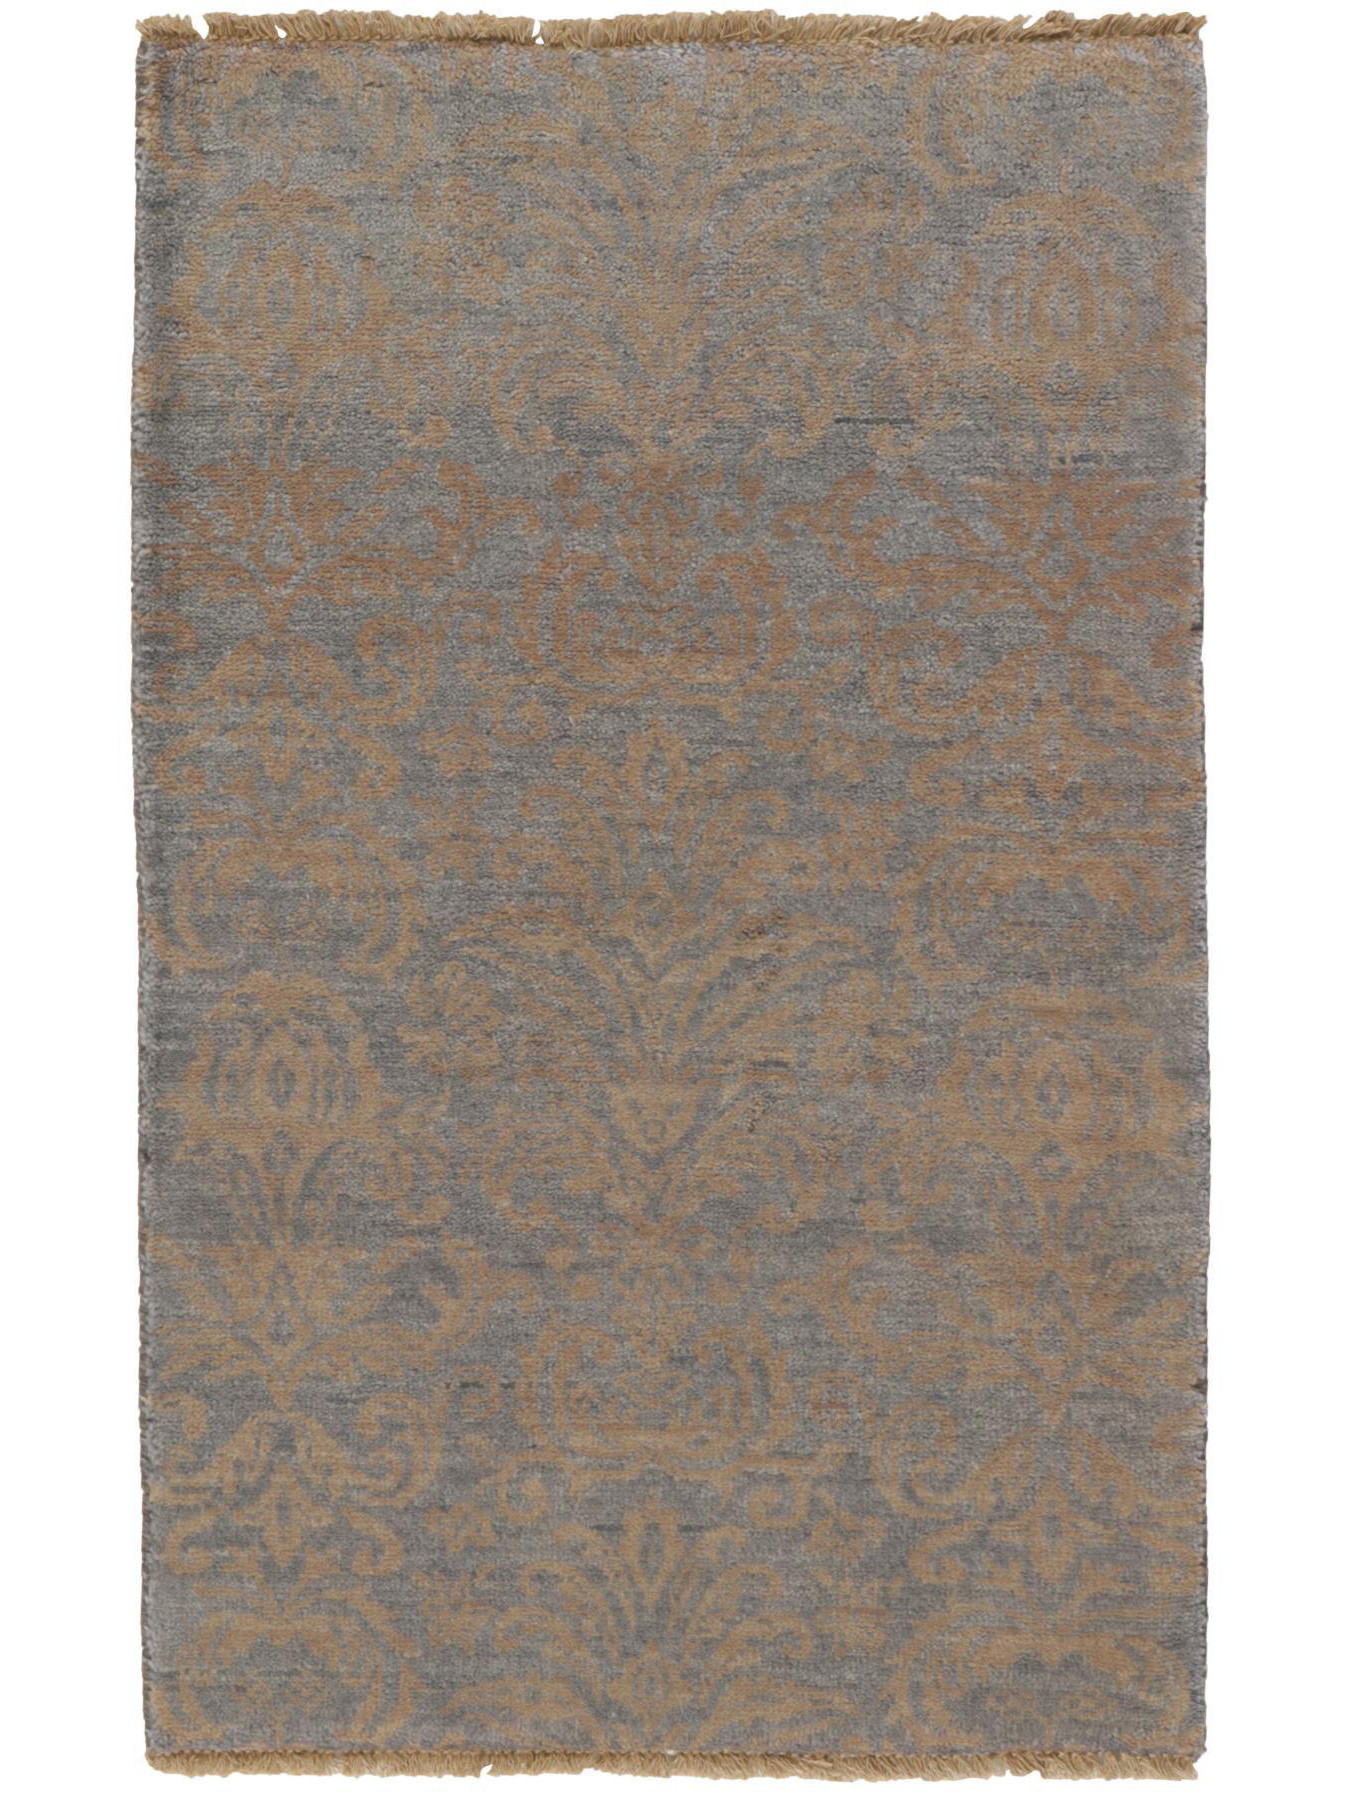 Luxury carpets - Damask-AL-445 HB-6/HB-36